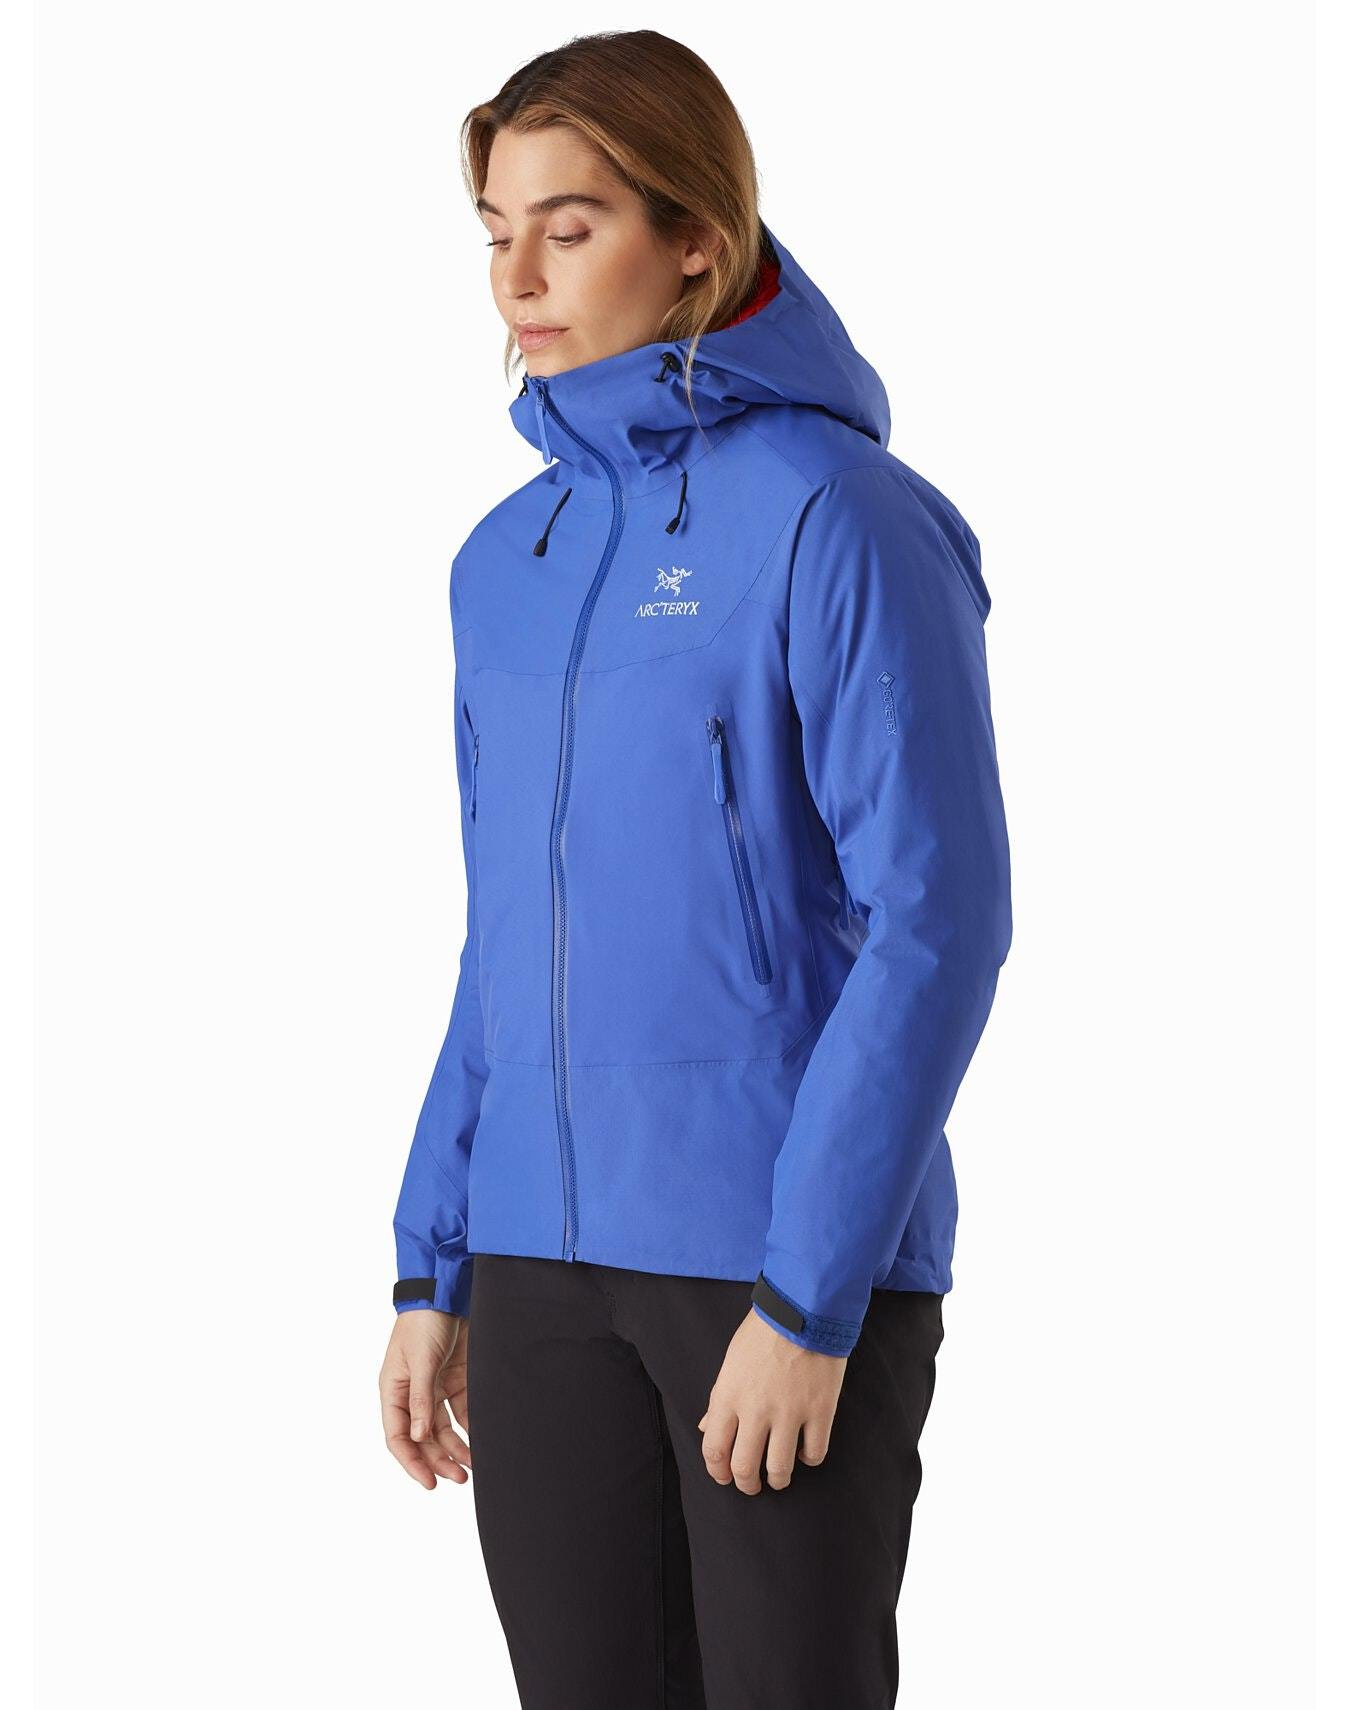 Women's Beta SL Hybrid Jacket whisky